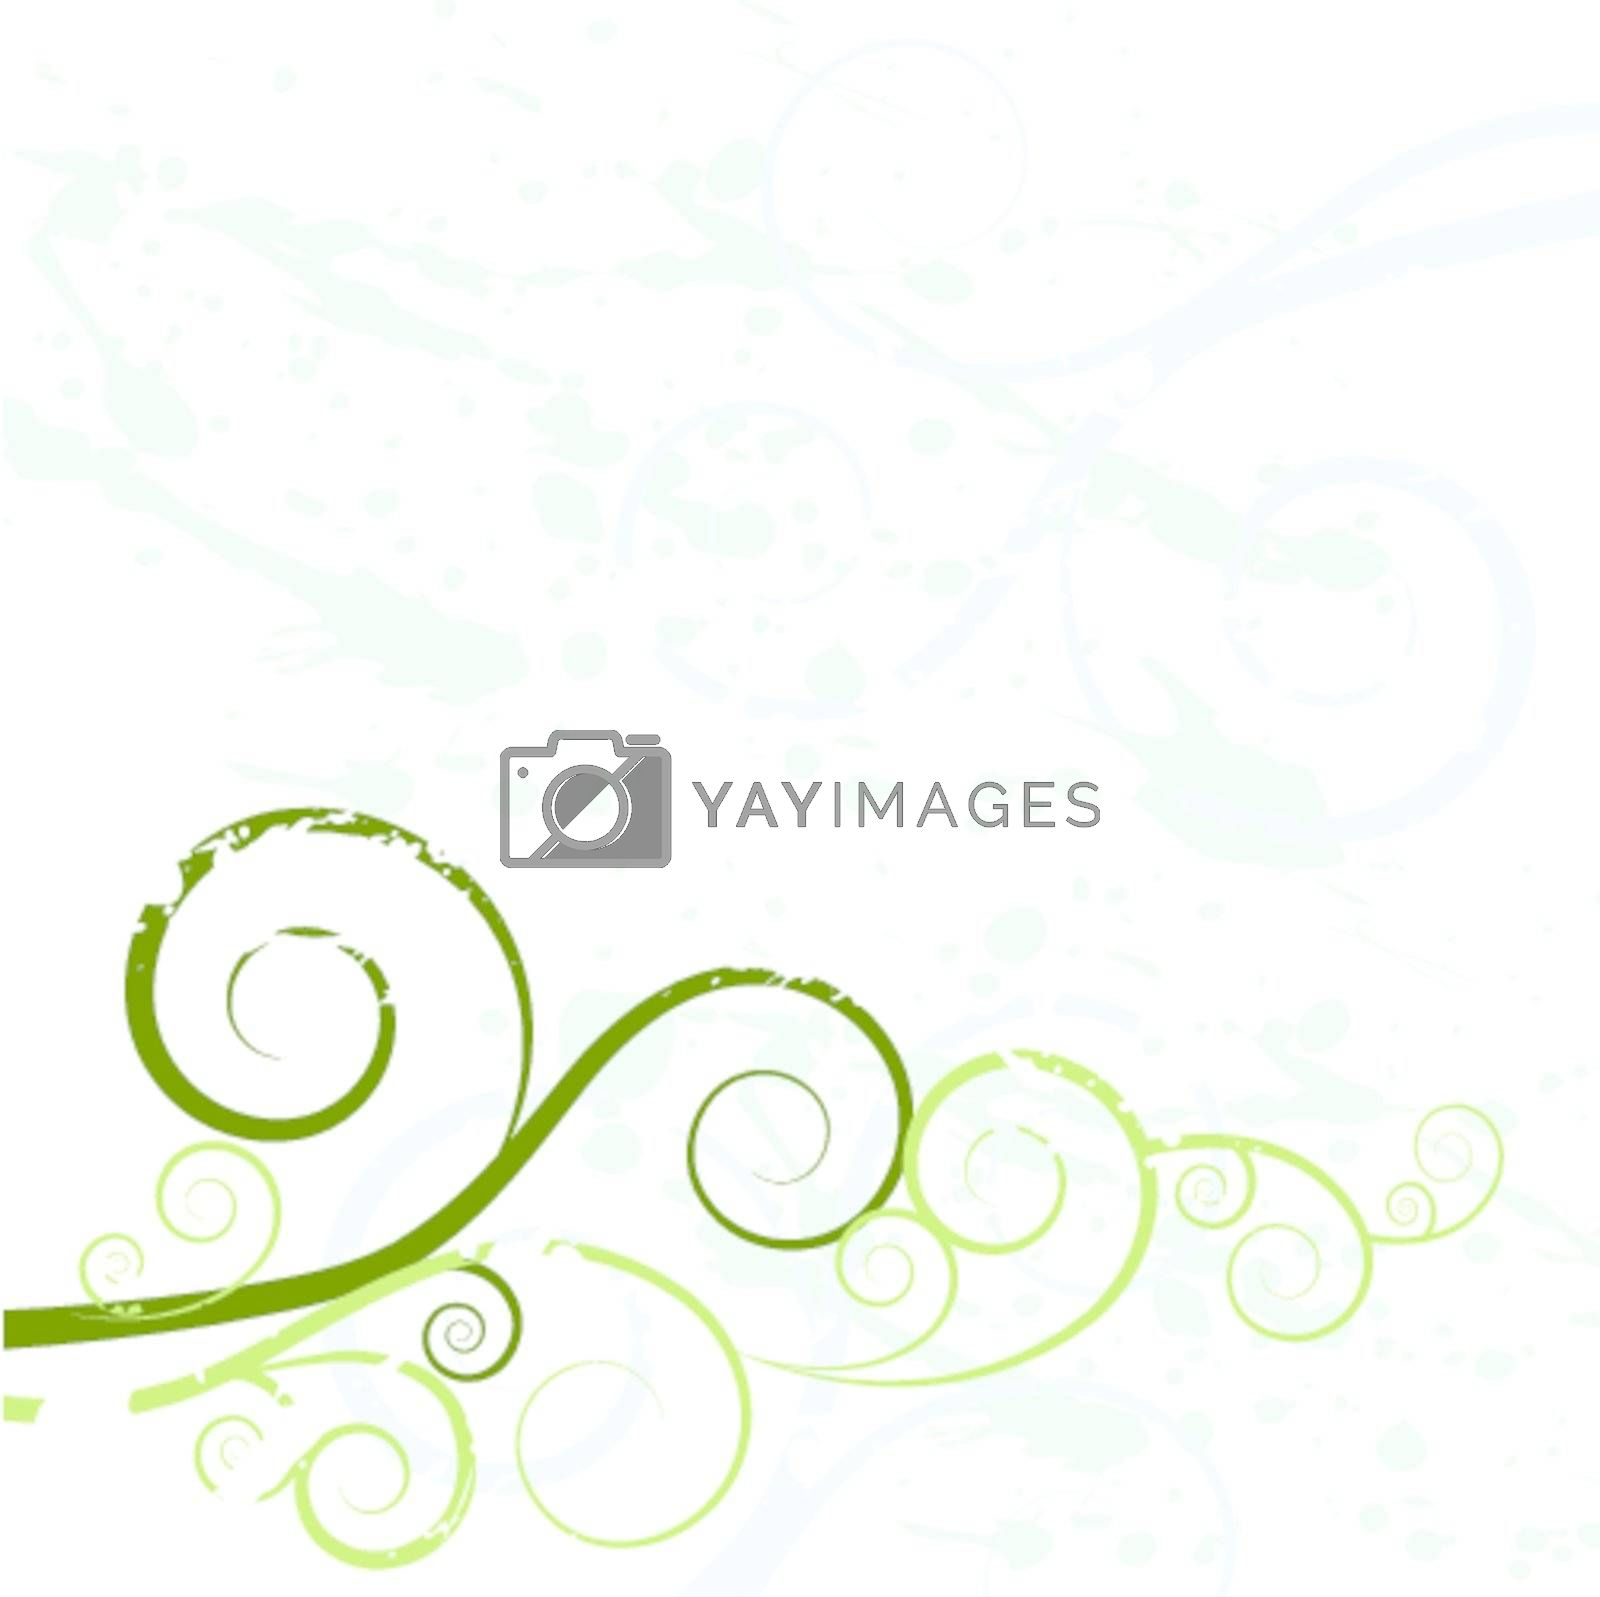 An image of a grunge swirl background texture.